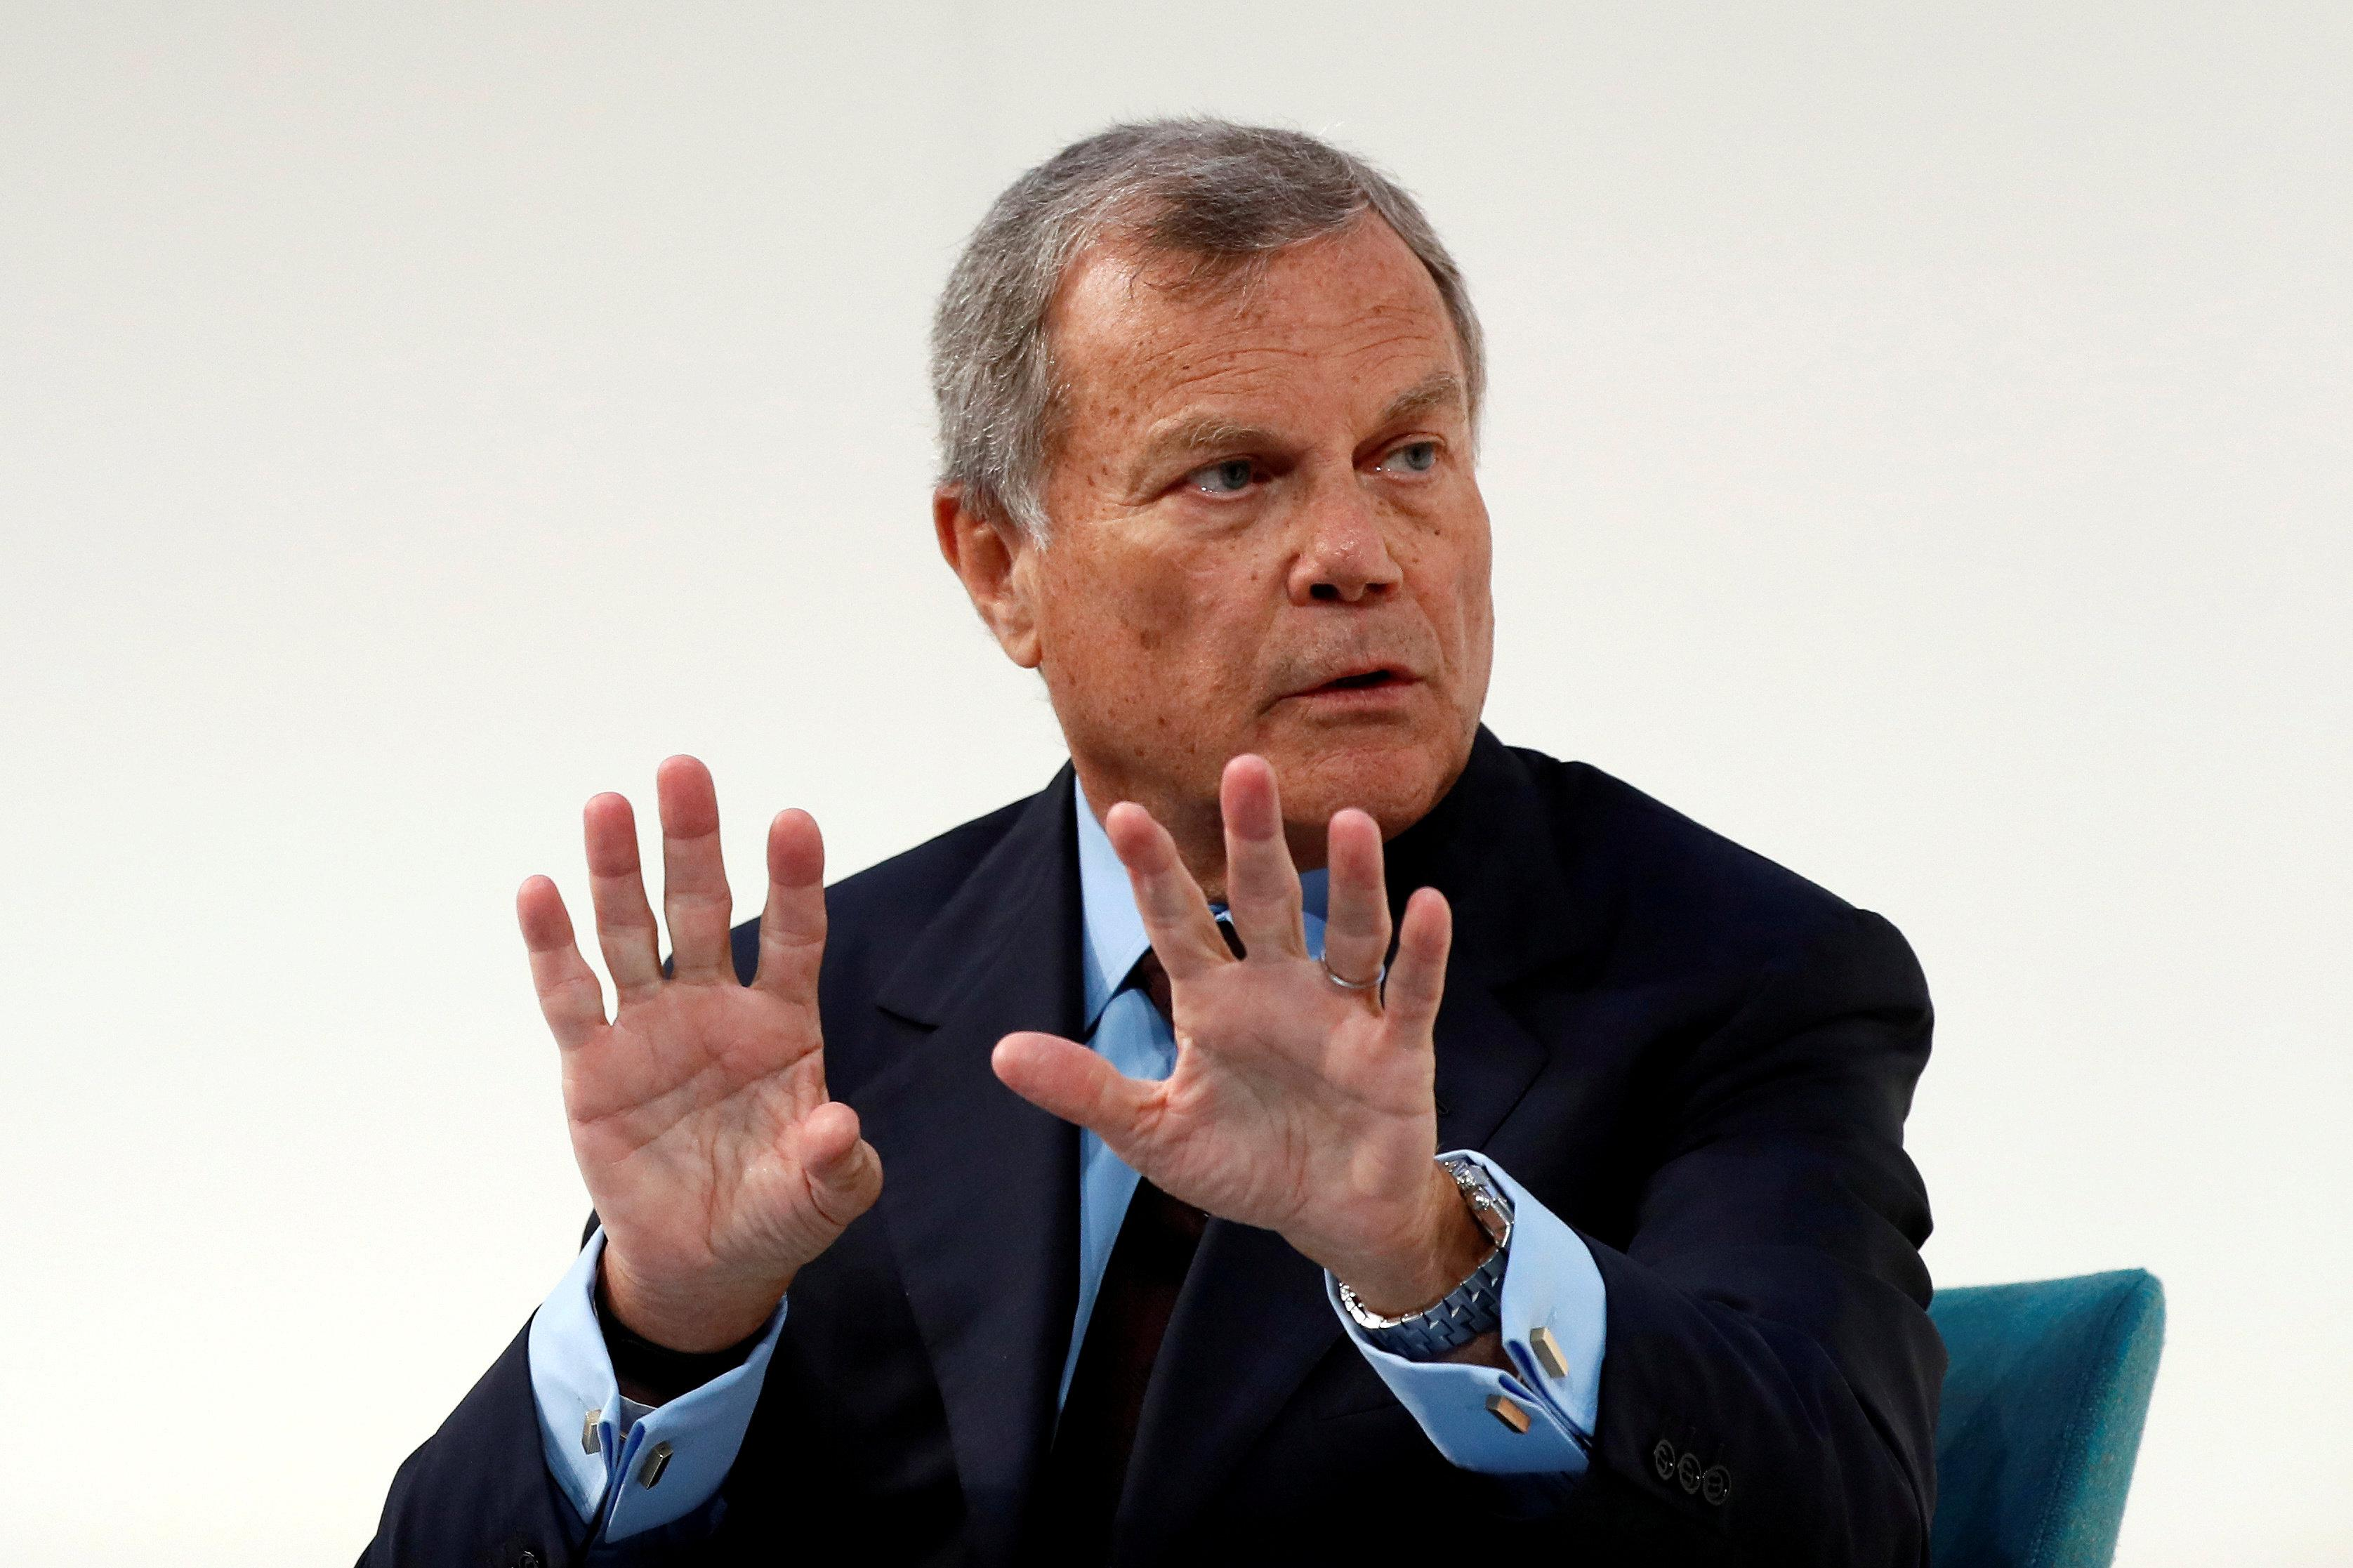 Martin Sorrell, chairman and chief executive officer of WPP, the world's largest advertising company, speaks at the Confederation of British Industry's (CBI) annual conference in London, Britain November 21, 2016. Stefan Wermuth